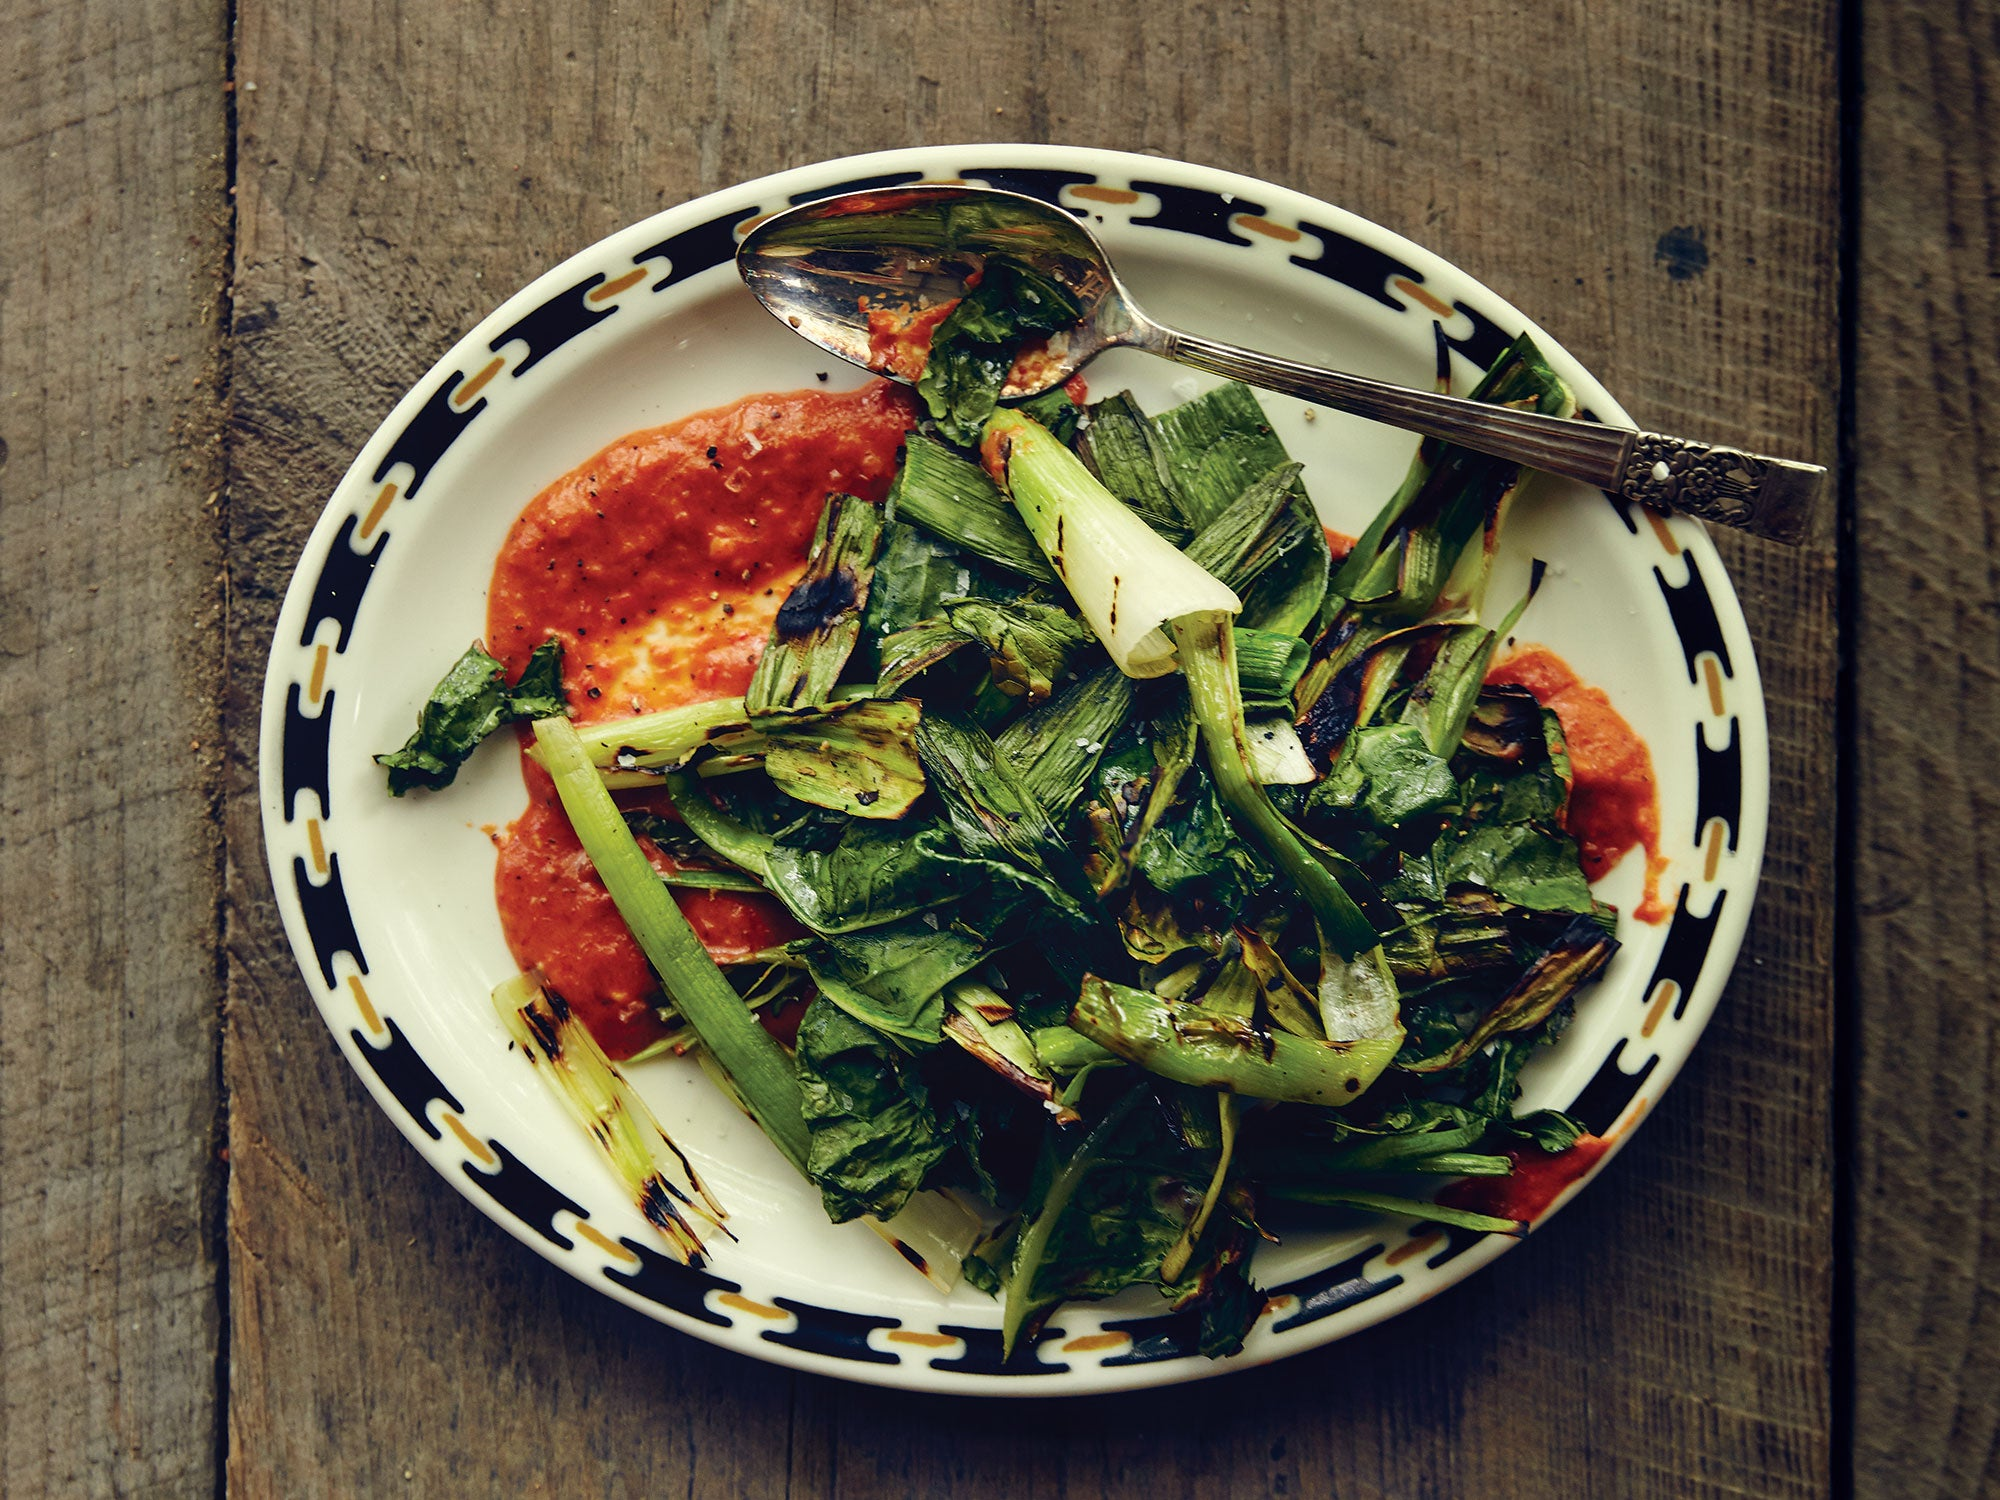 Grilled Greens and Leek Tops with Chile-Garlic Sauce